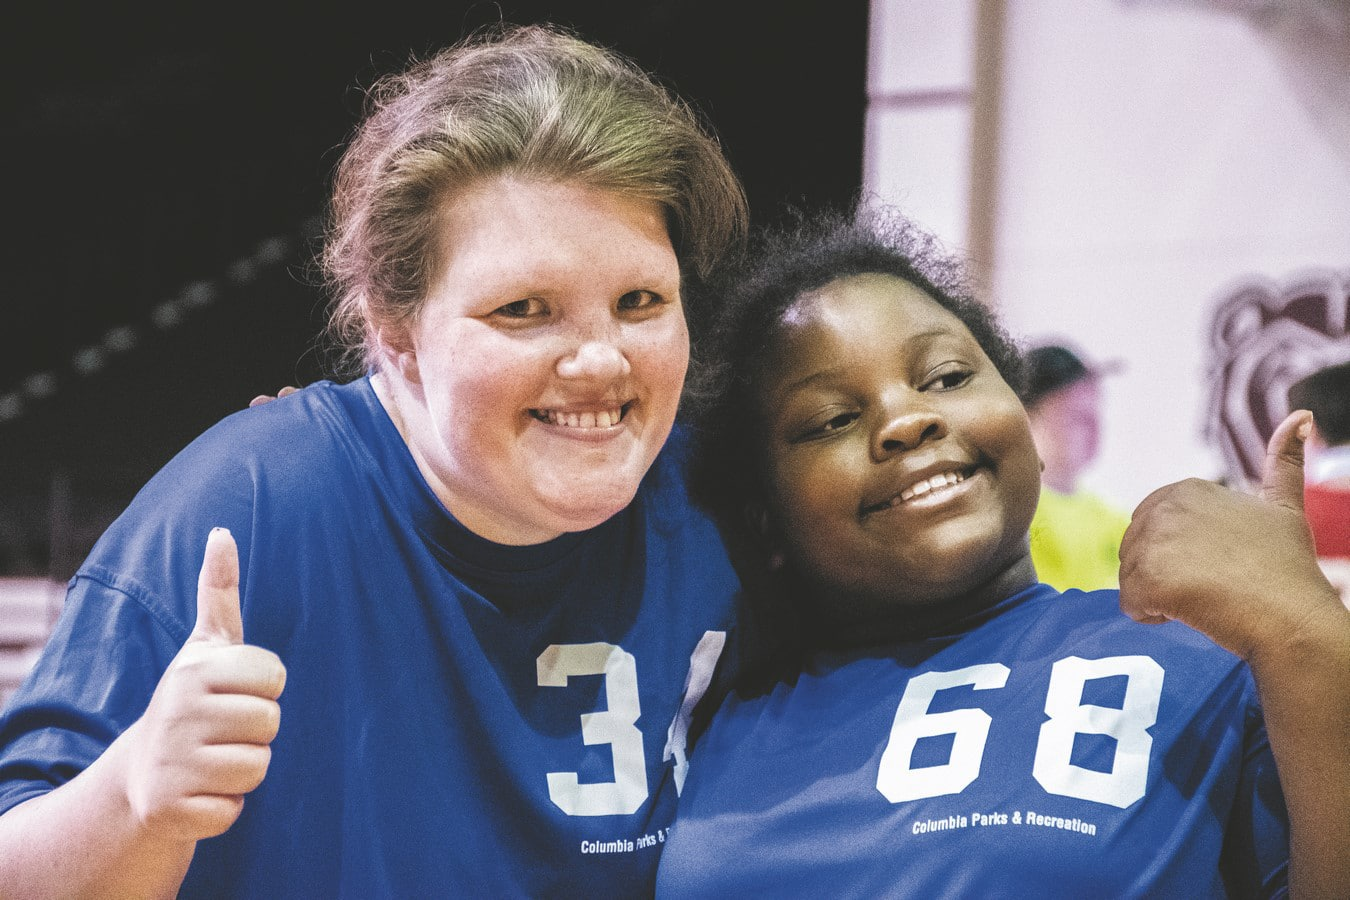 Two athletes from Columbia Parks & Recreation pose for a photo with their thumbs up